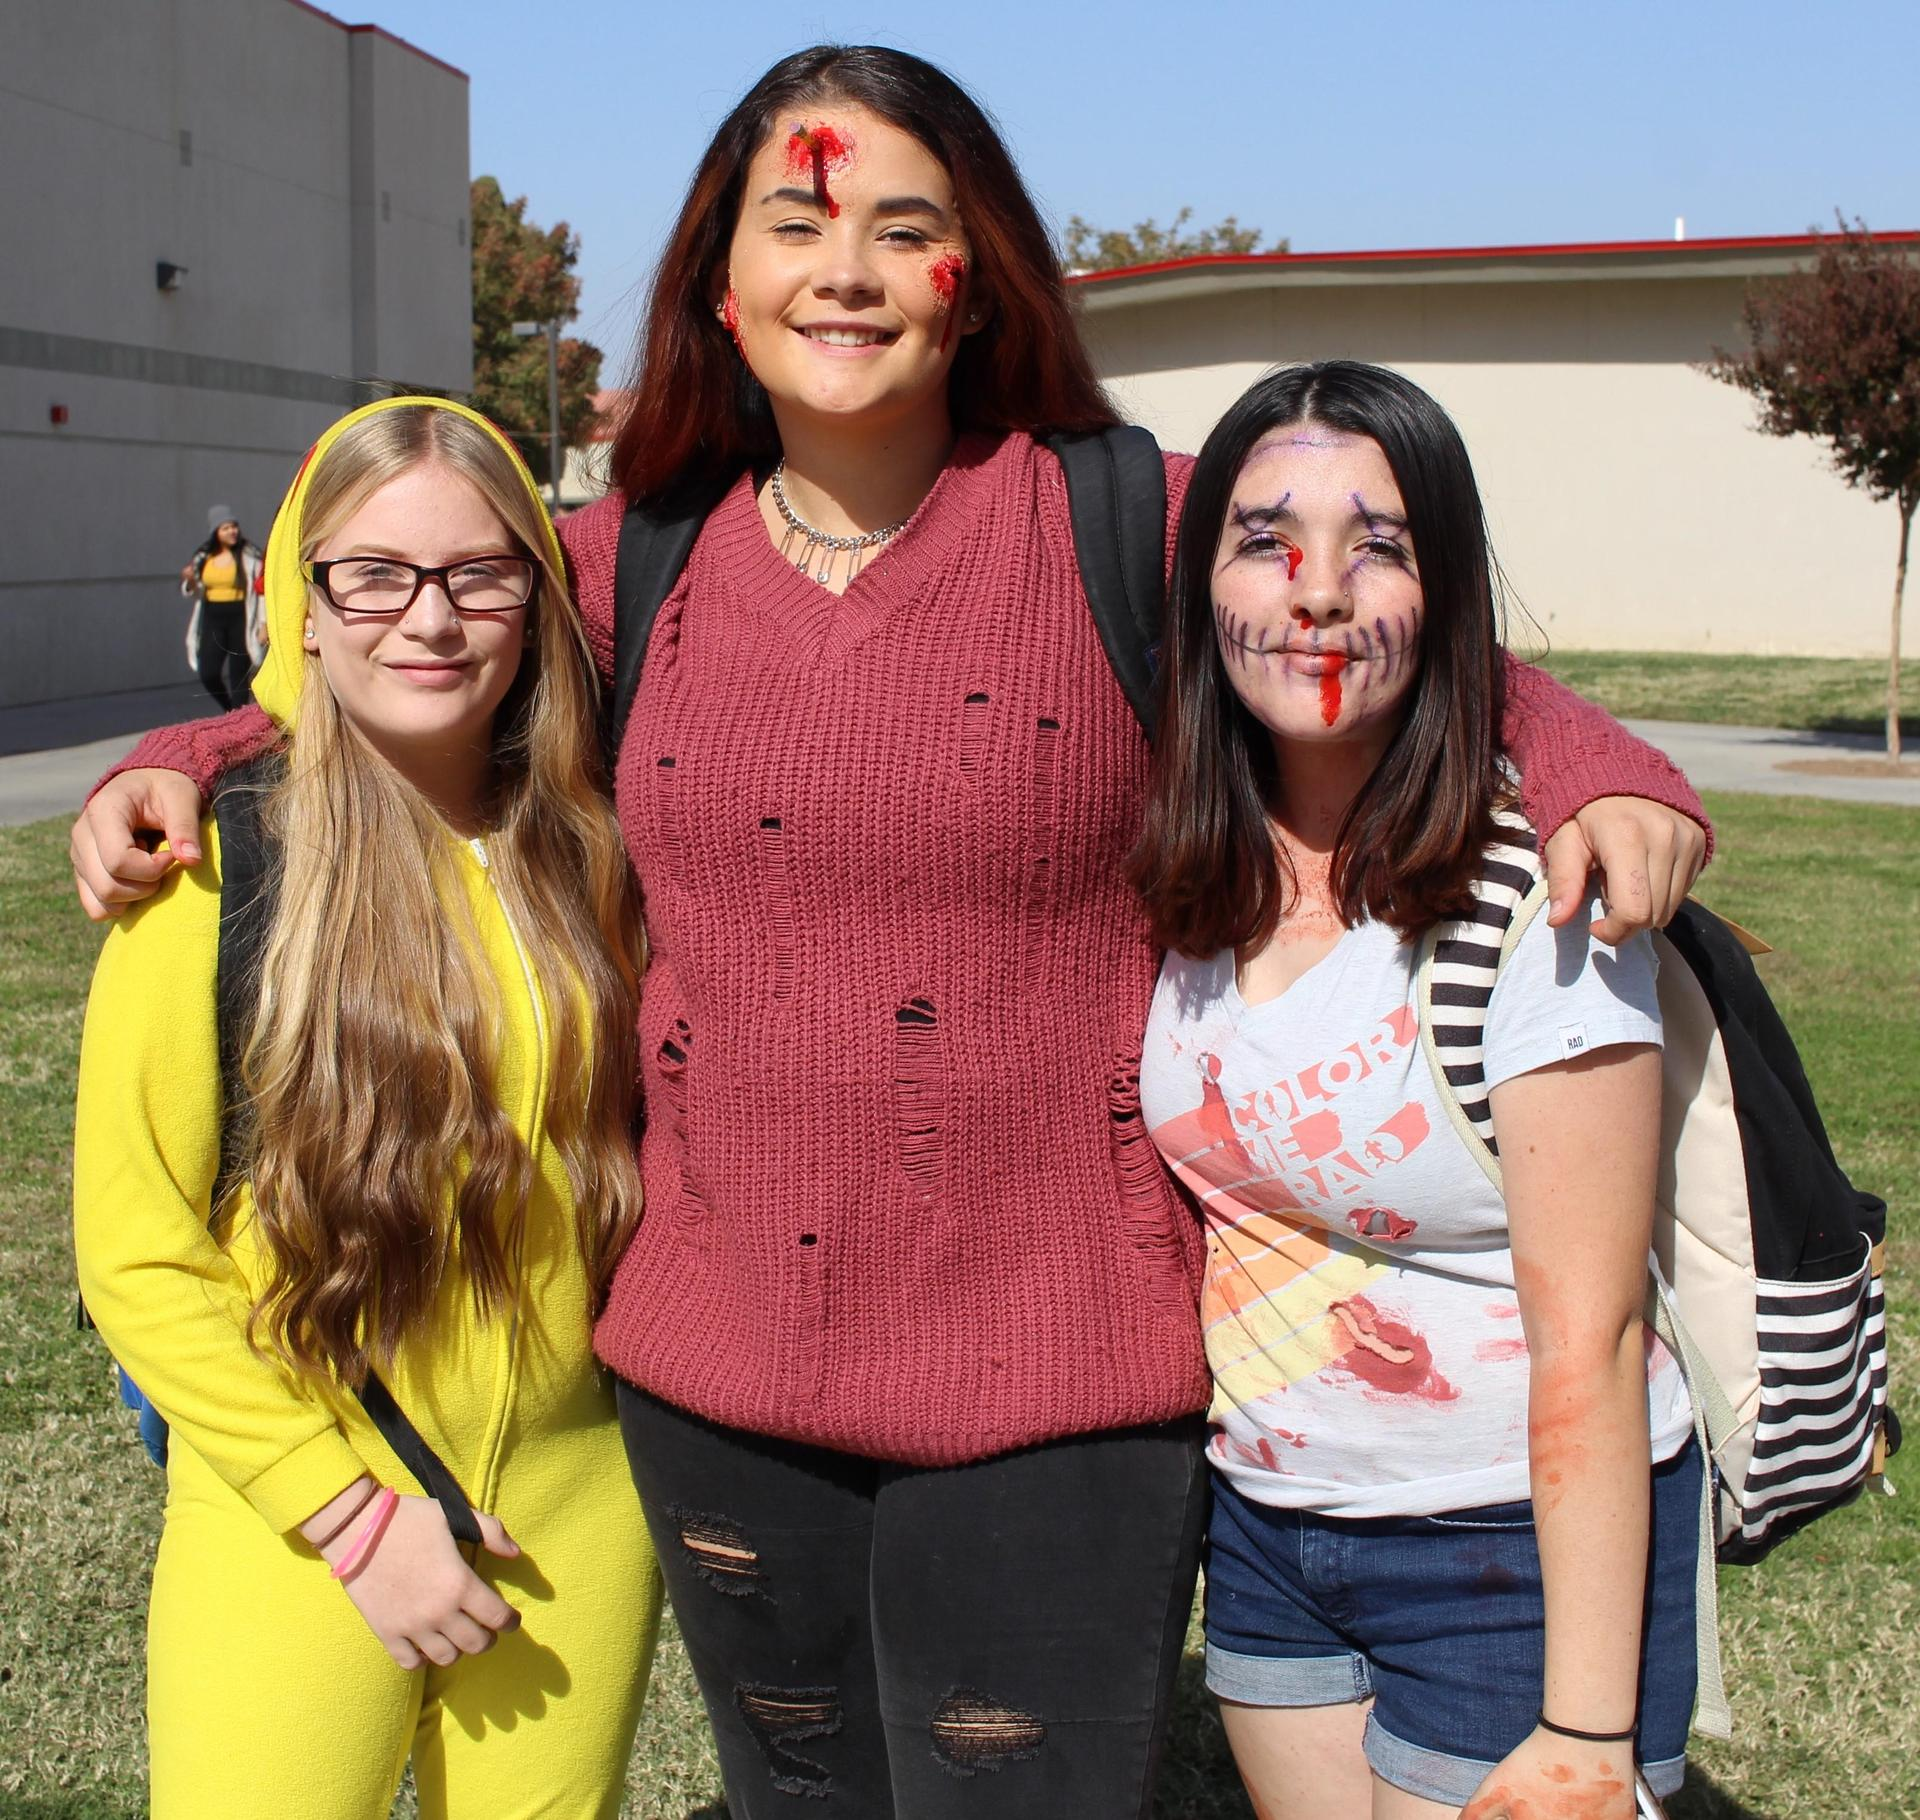 Maryjane Cluver as a chicken, Emily Azevedo as a zombie, Anabelle Birlew as a zombie